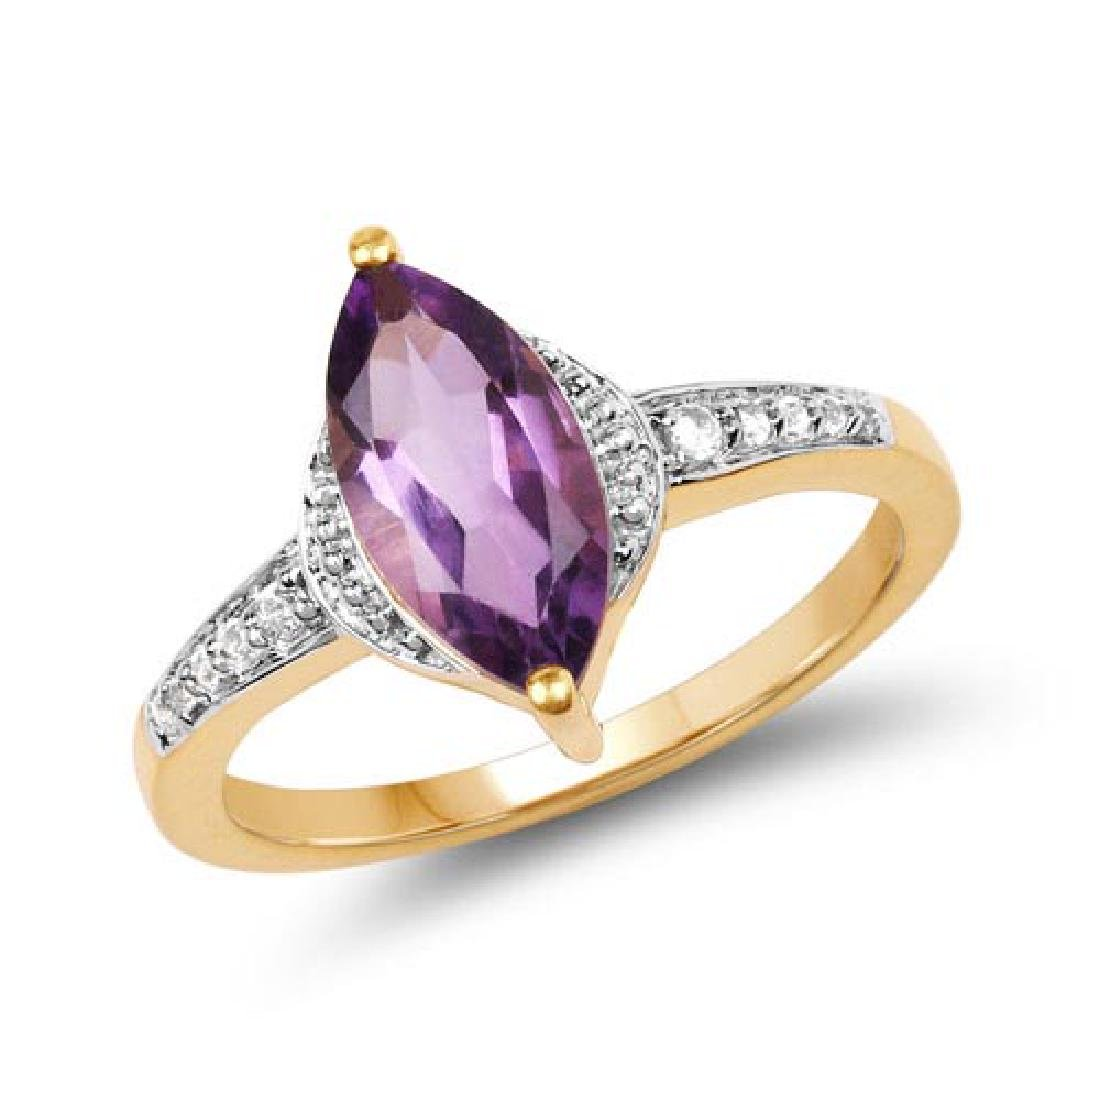 14K Yellow Gold Plated 1.55 Carat Genuine Amethyst and